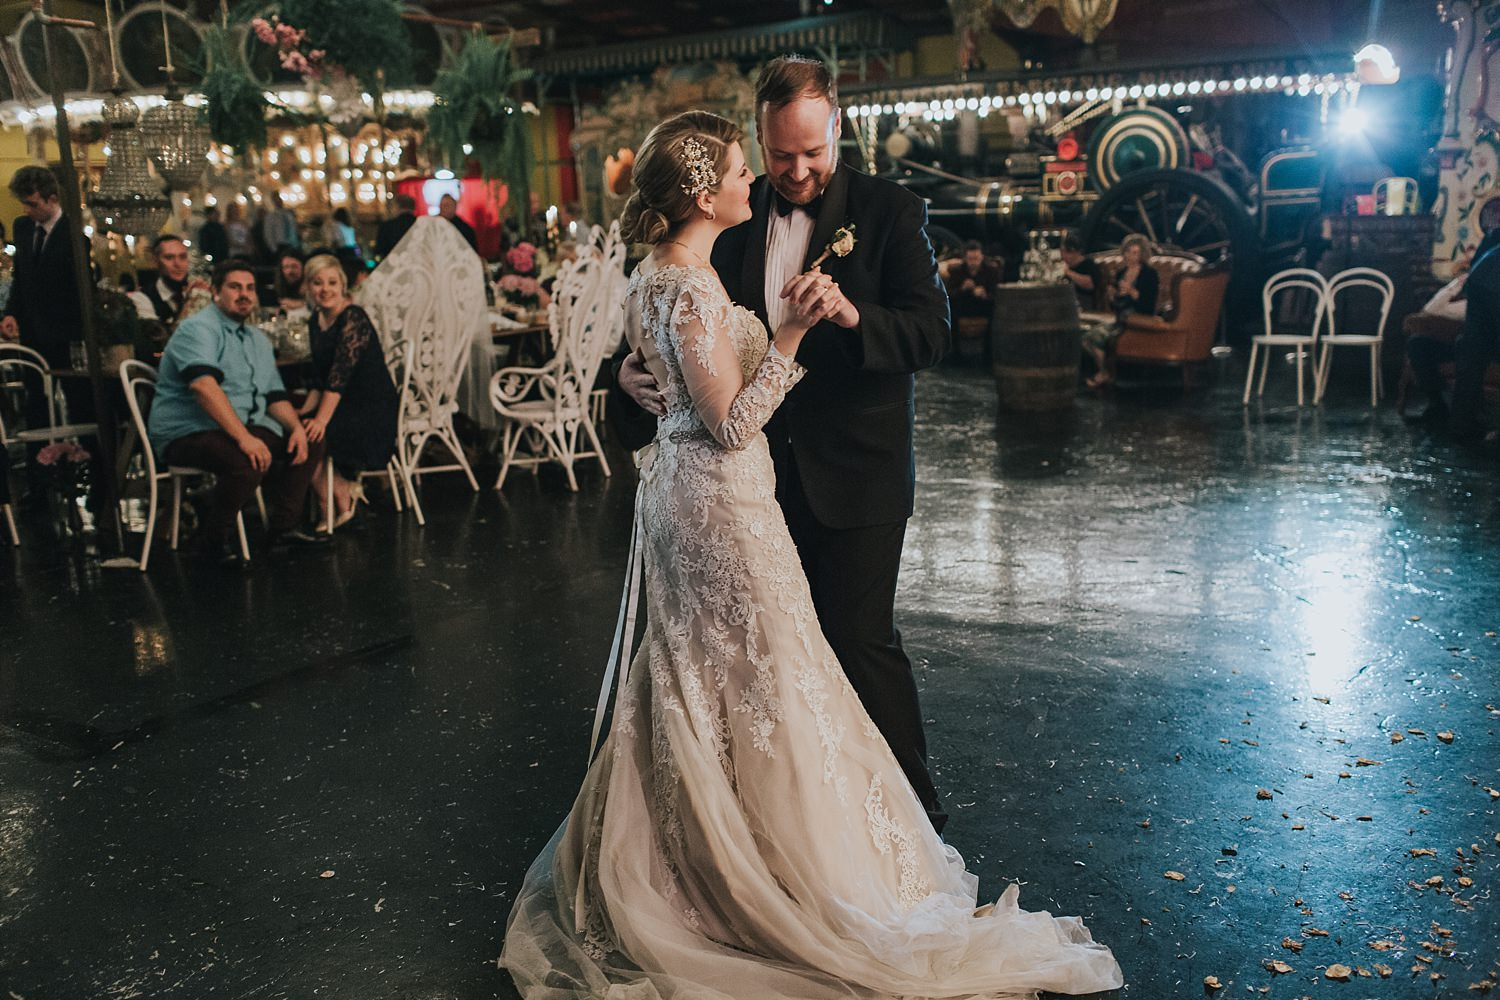 sydney bridal waltz at fairground follies